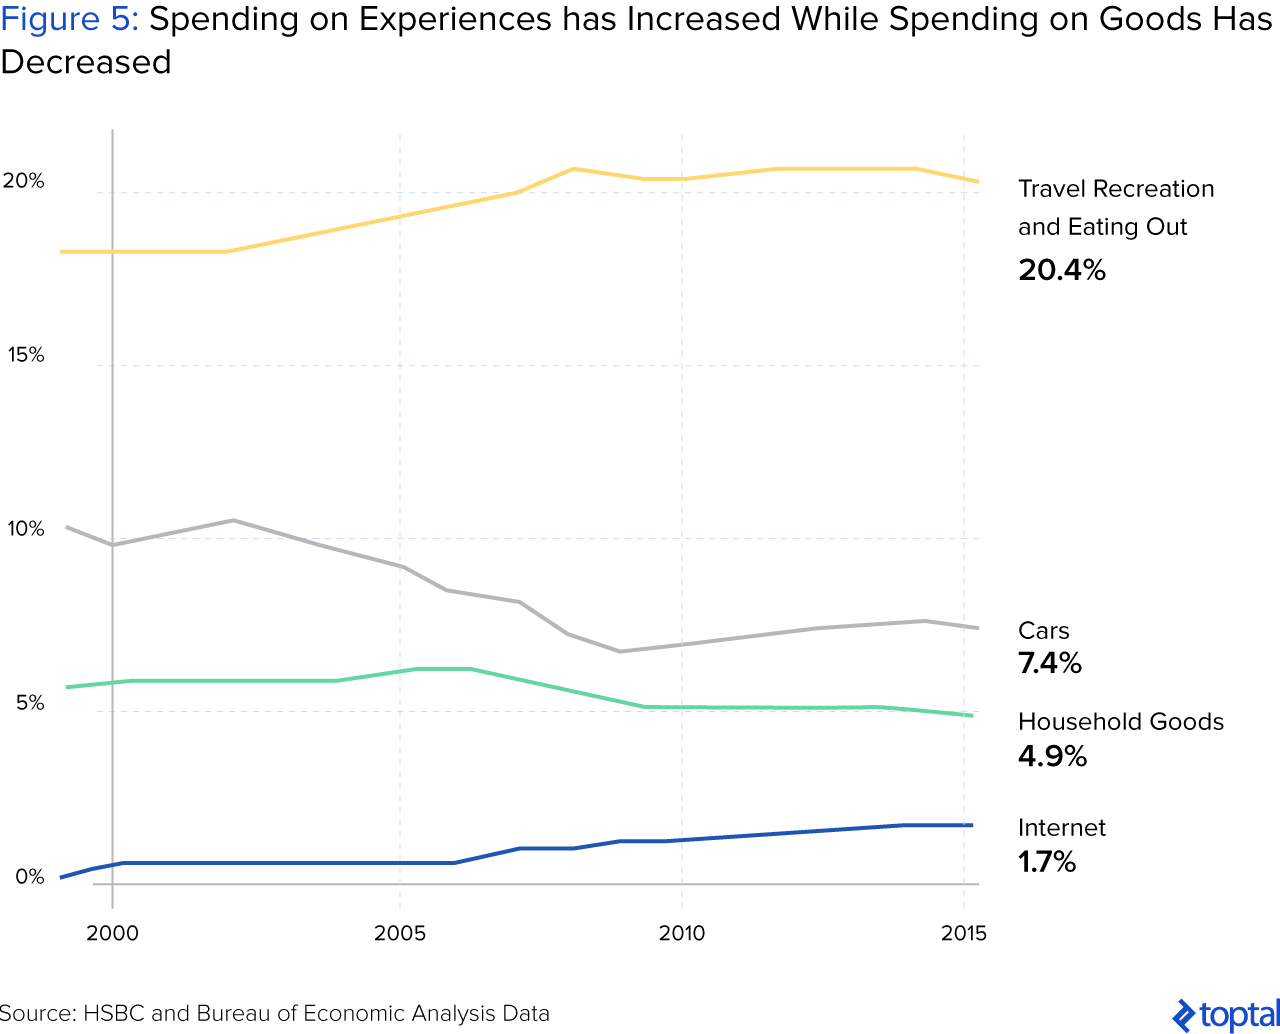 Figure 5: Spending on Experiences has Increased While Spending on Goods Has Decreased